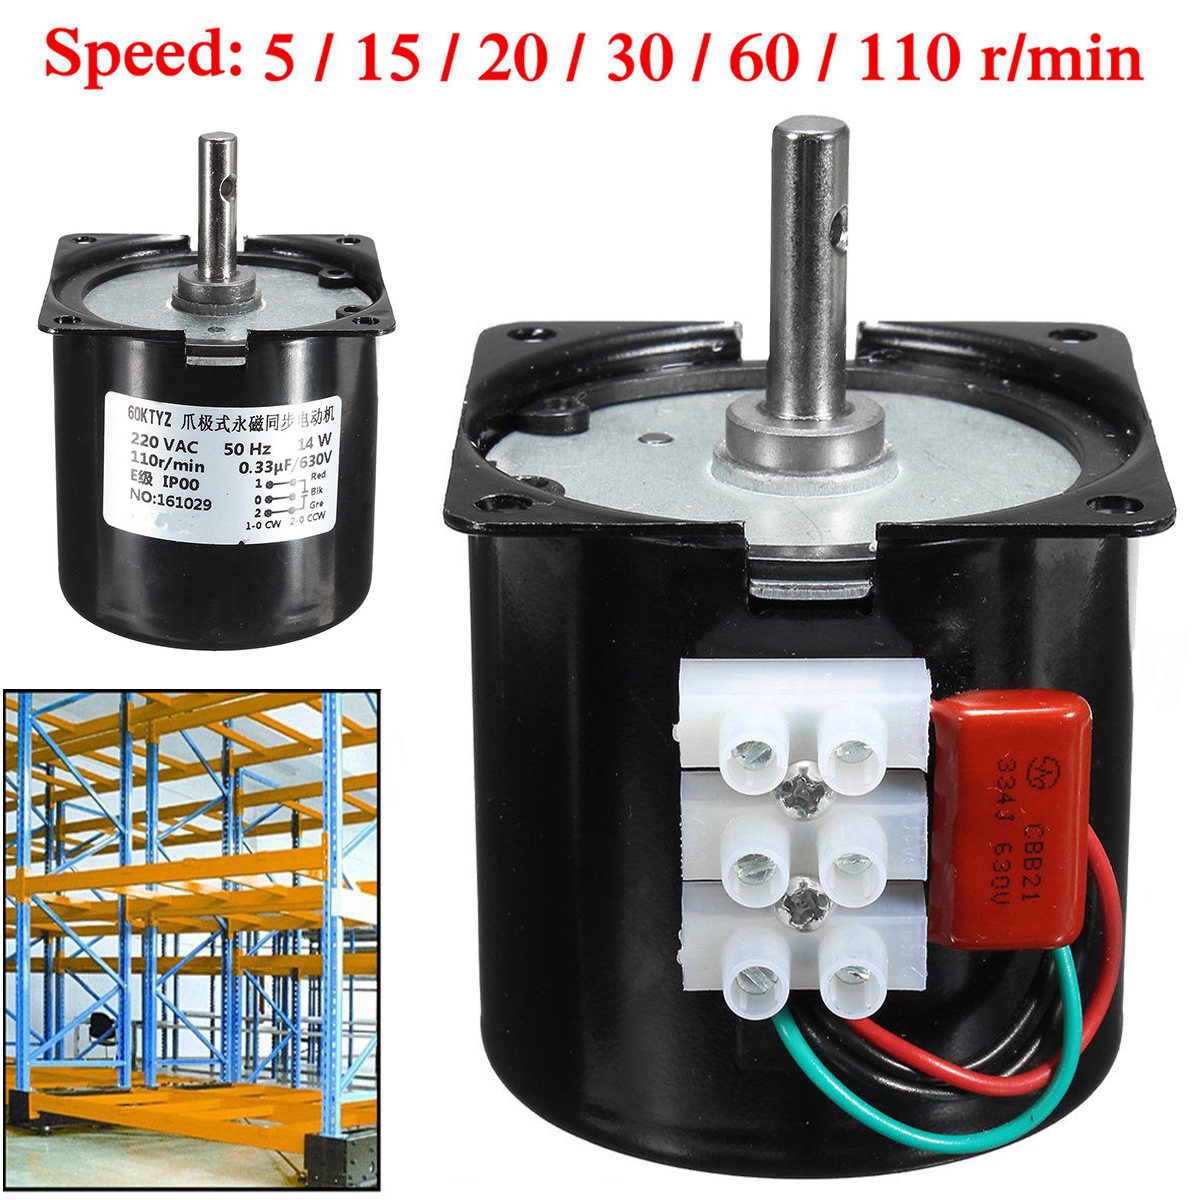 Replacement High Torque 50Hz 60KTYZ Synchronous Gear Motor Gear-Box AC 220V 14W with High Strength